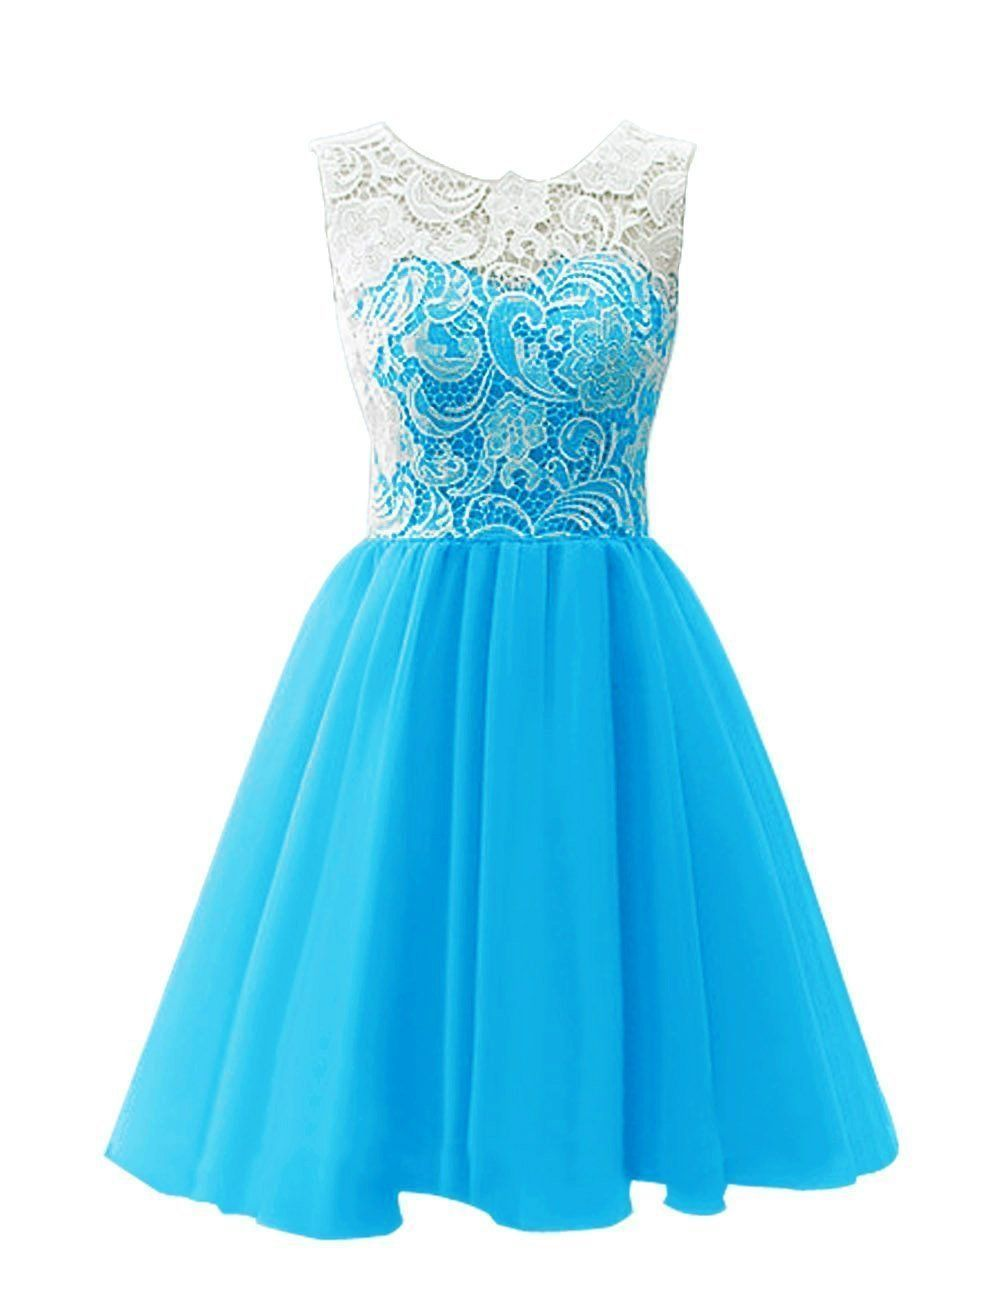 Micbridal flower girl adult ball gown lace short prom dress blue